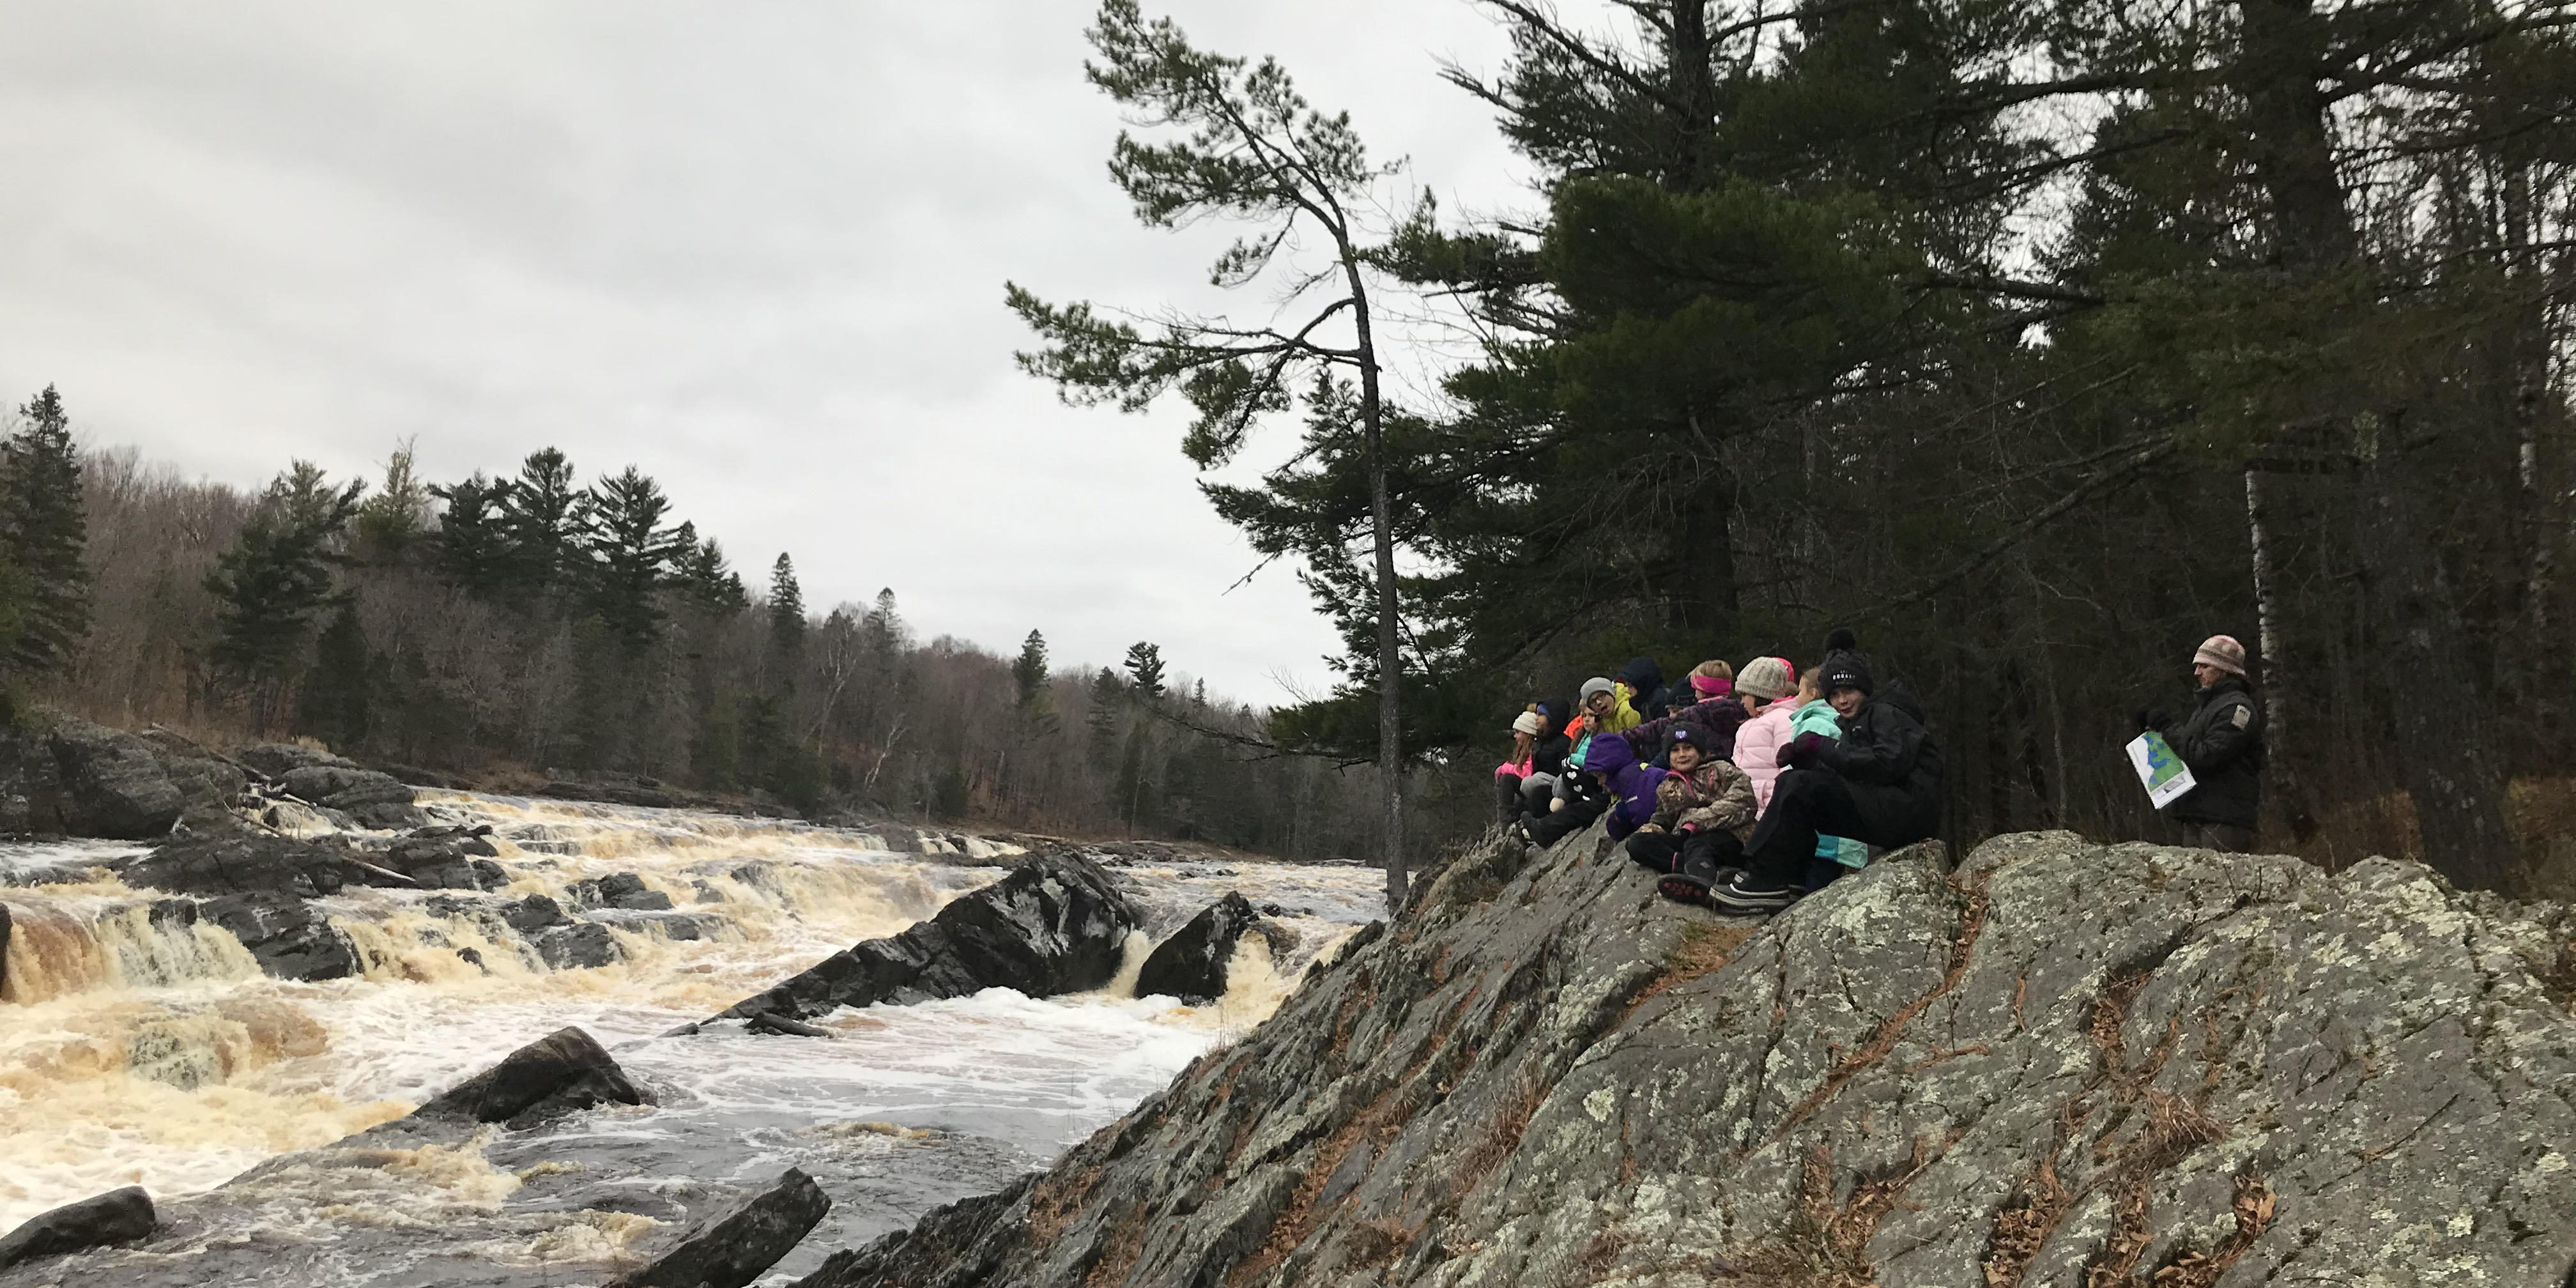 Fourth graders learning about geology at Jay Cooke State Park